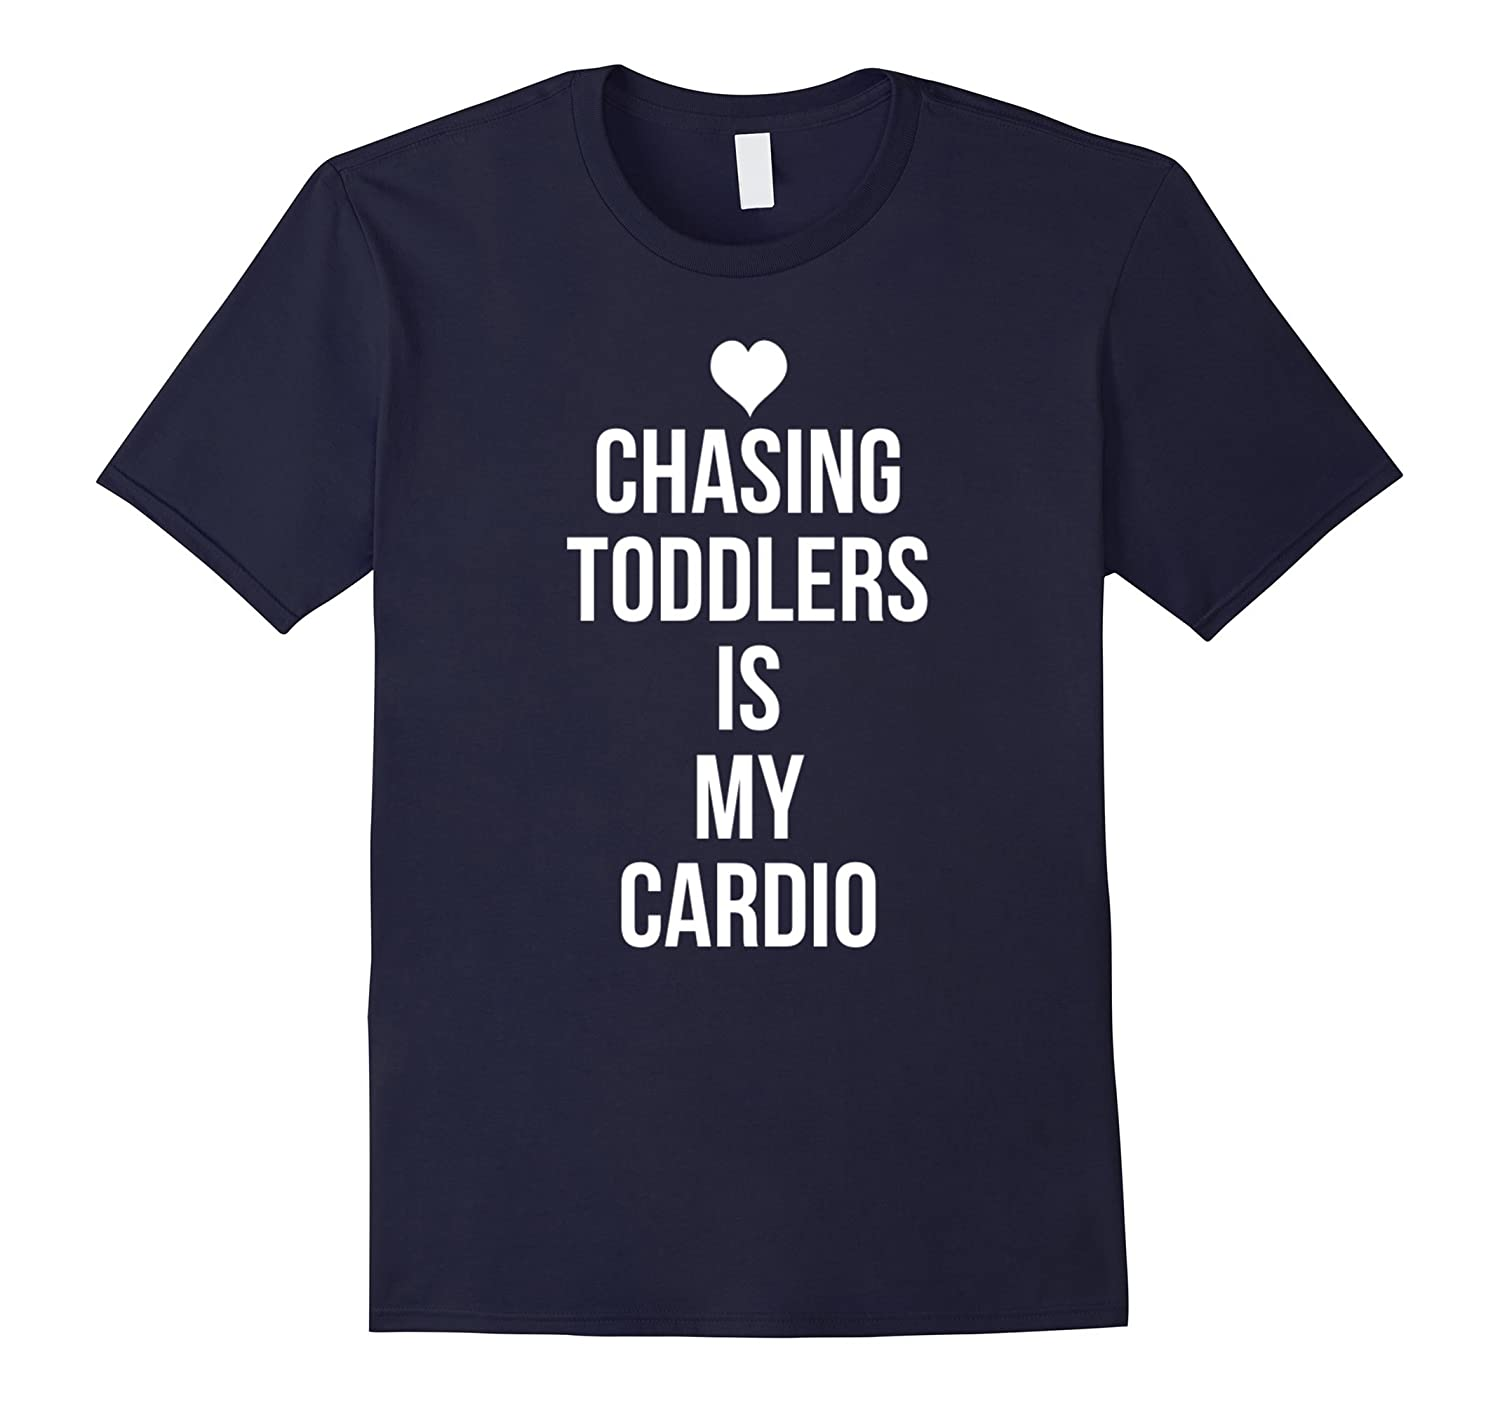 Chasing Toddlers Is My Cardio Funny DayCare Babysitter Shirt-TJ